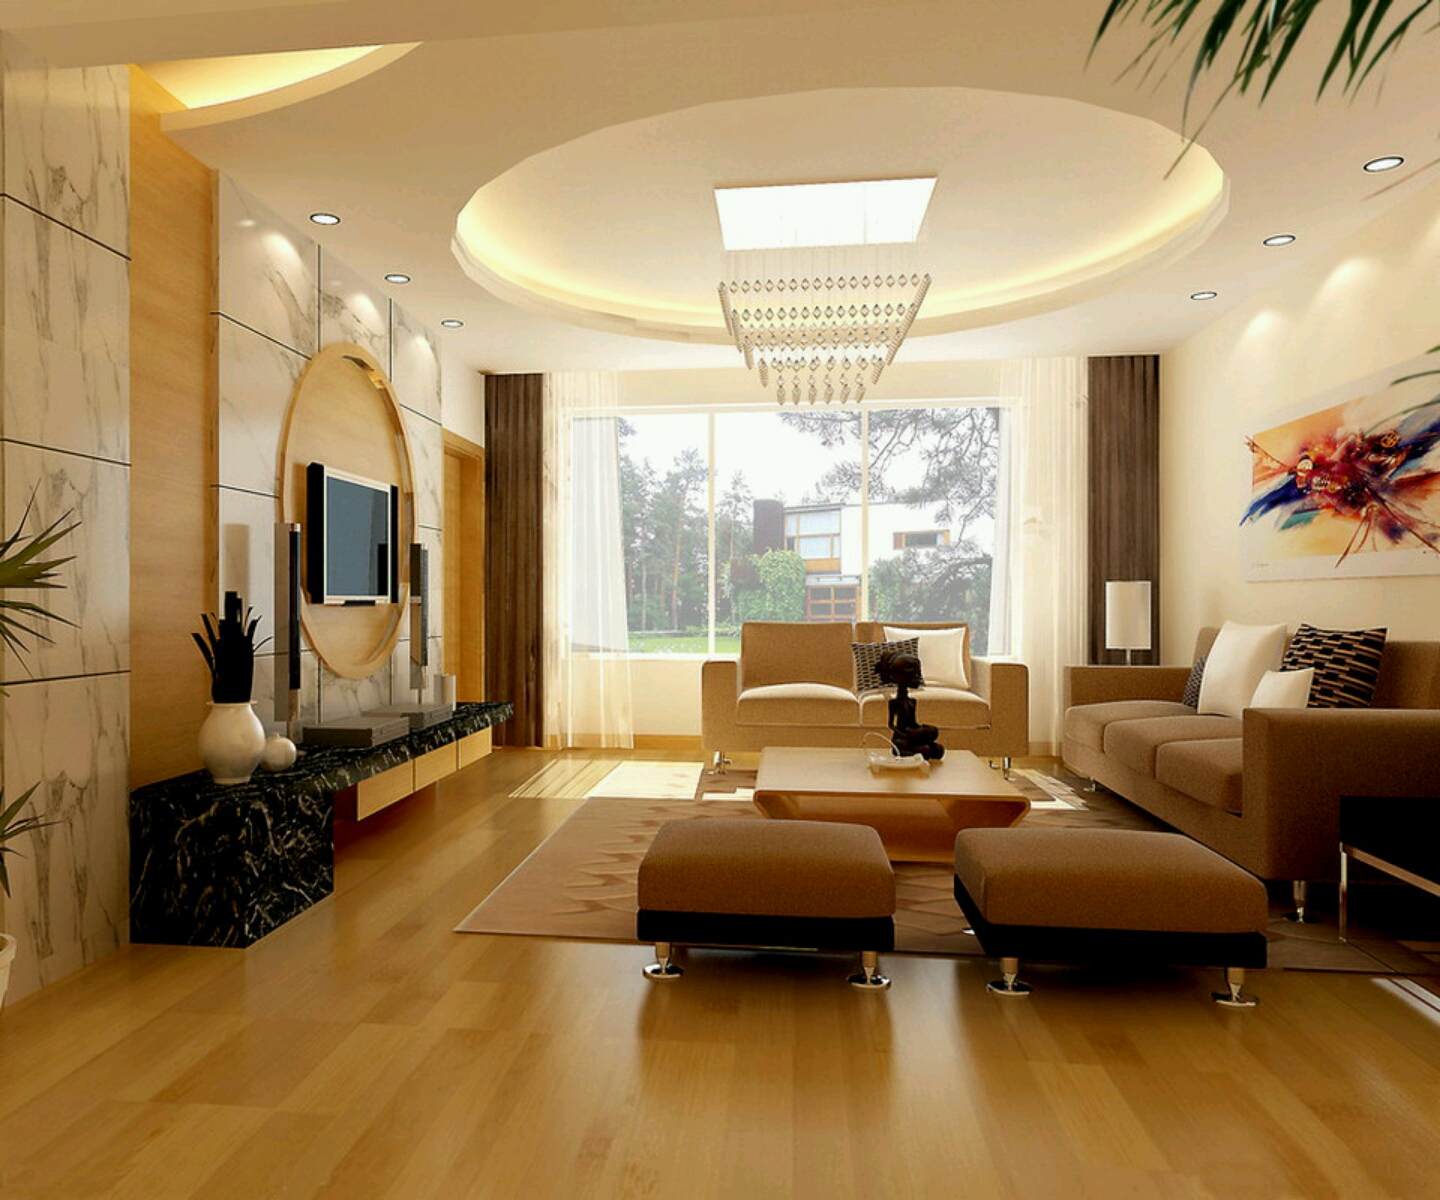 Modern interior decoration living rooms ceiling designs for At home interior design